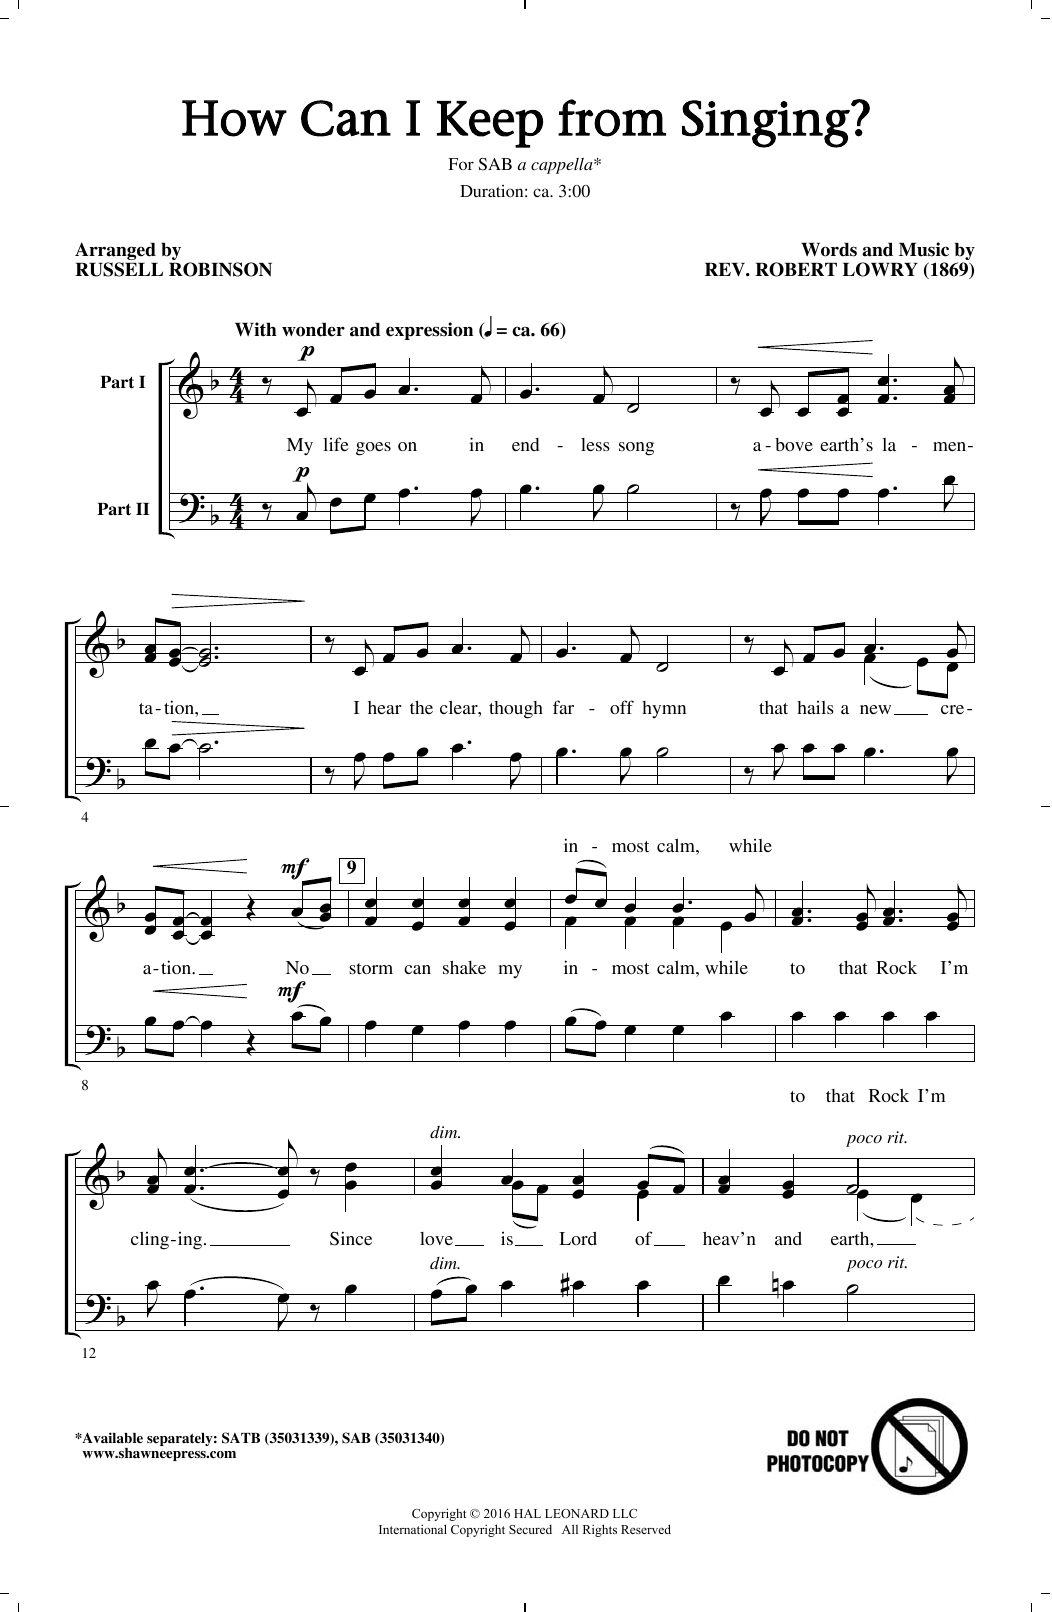 Russell Robinson How Can I Keep From Singing? sheet music notes and chords. Download Printable PDF.